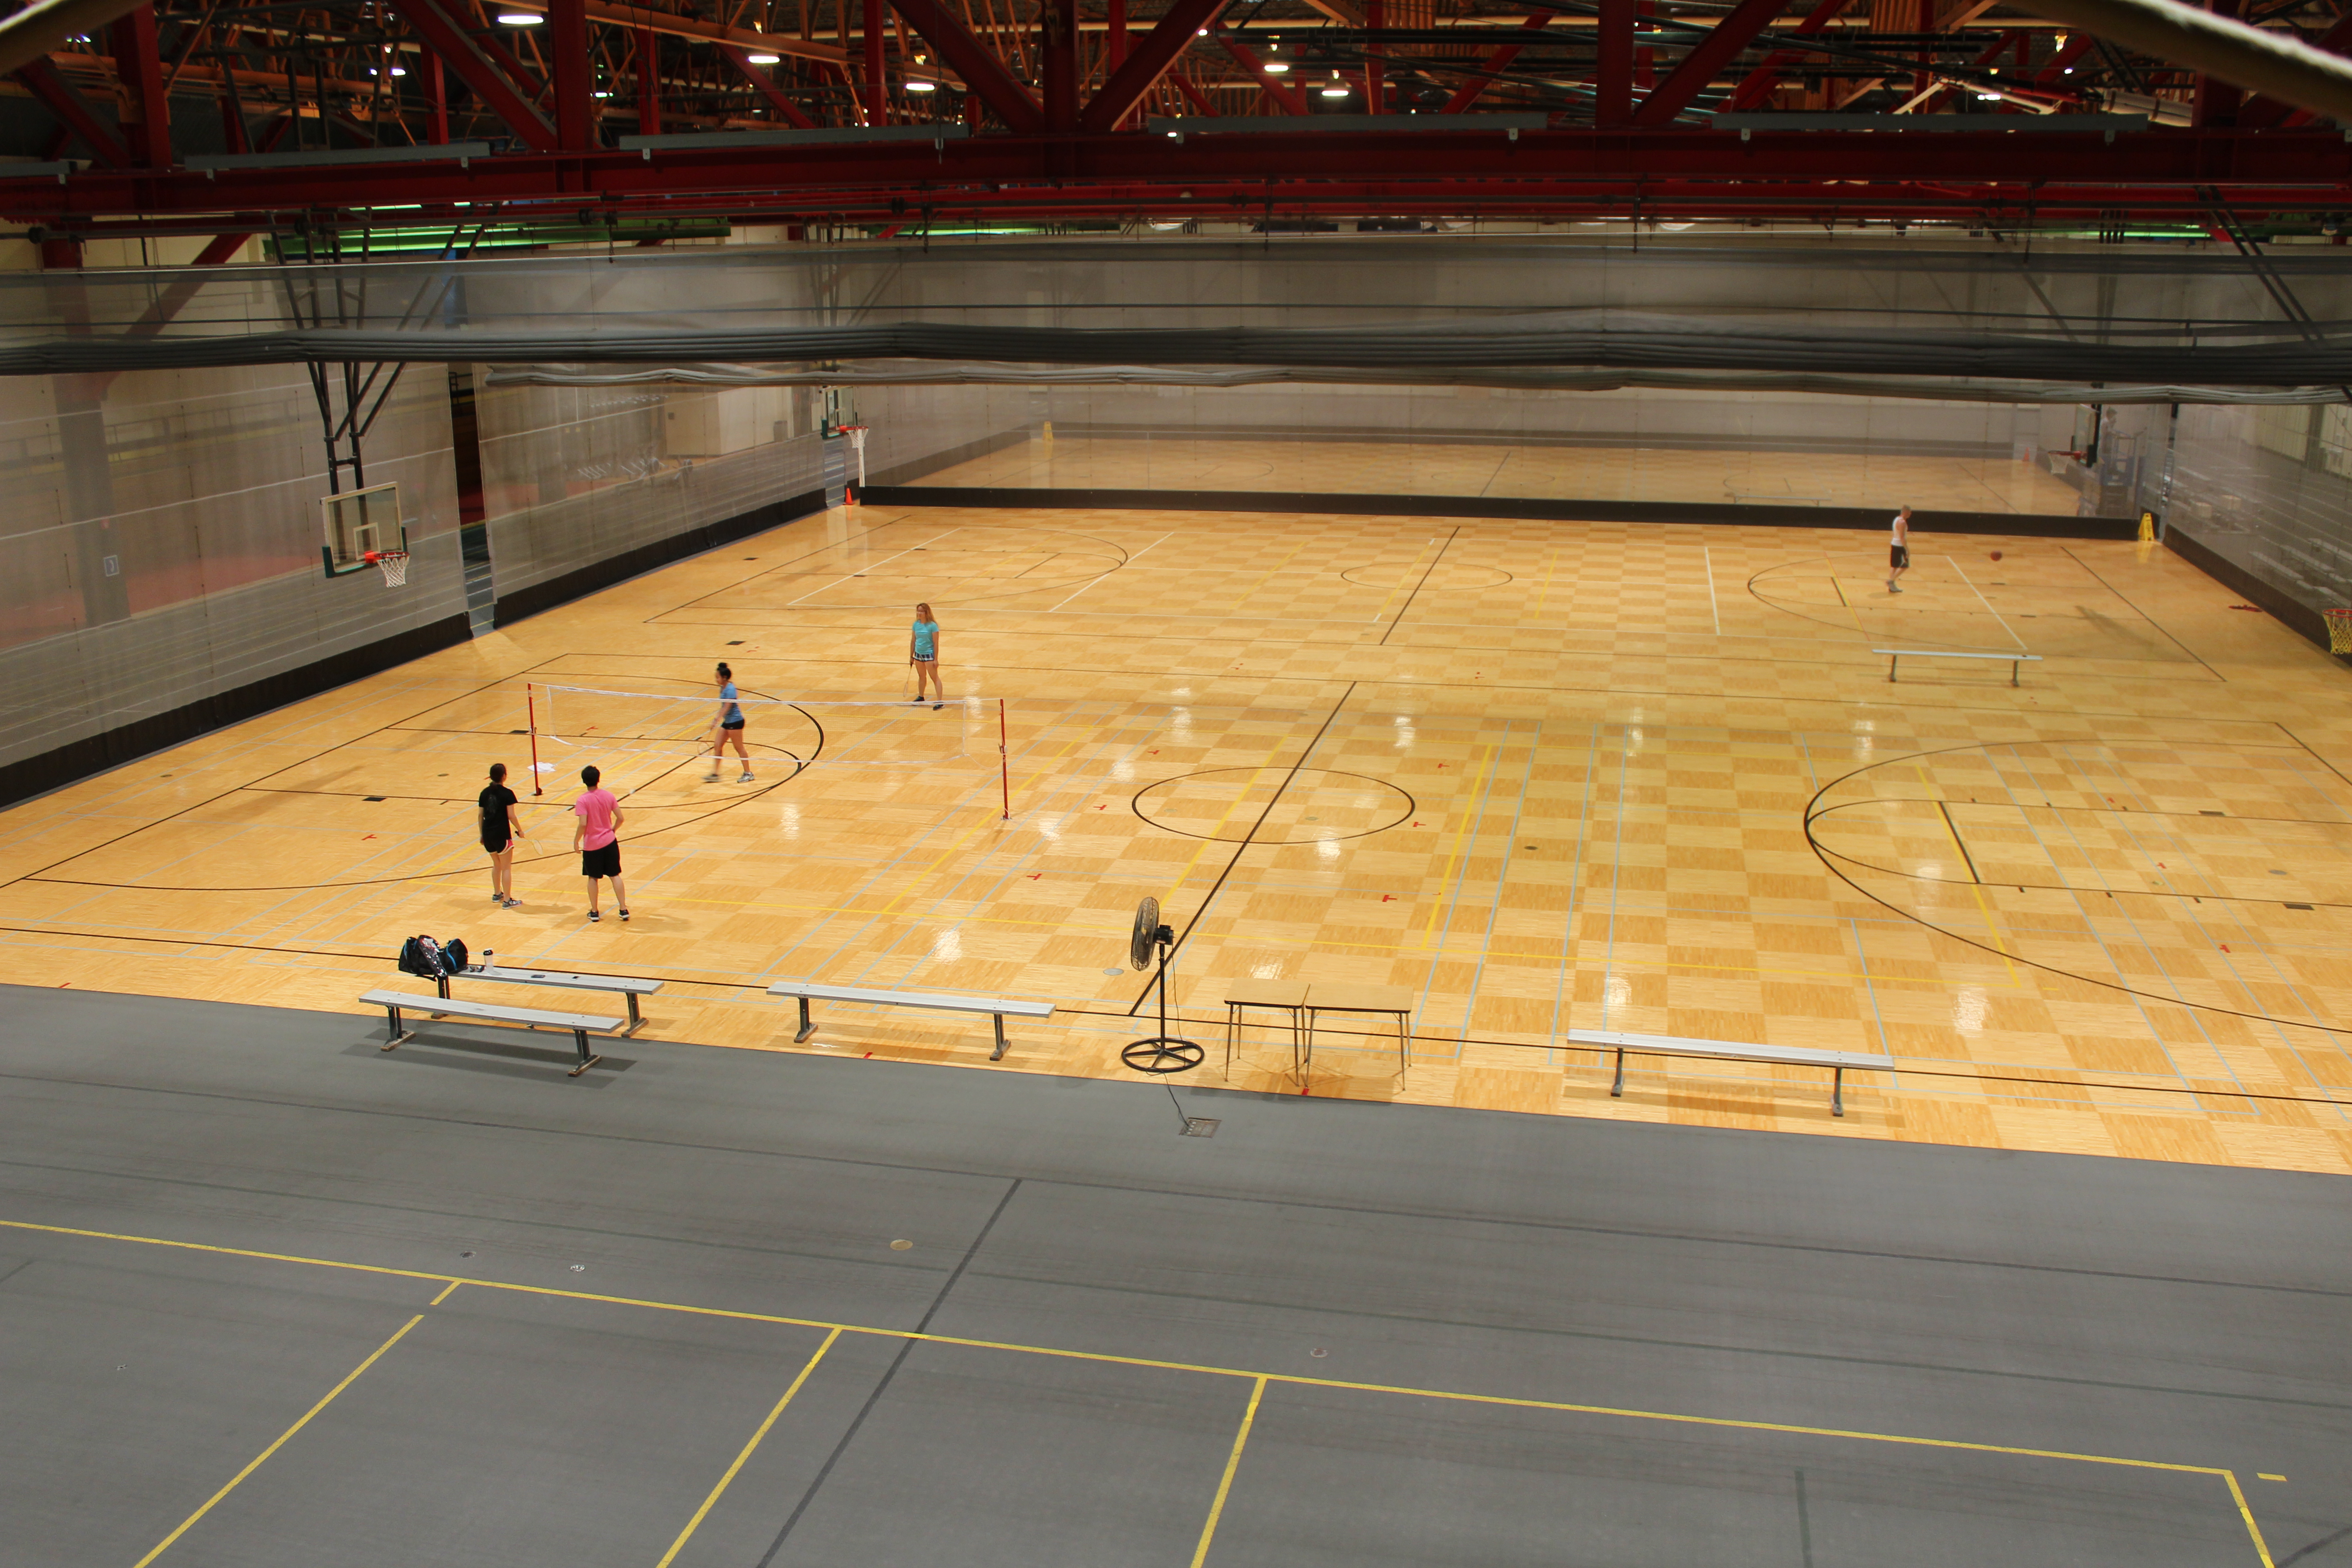 view from a high place of people playing badminton on the gym floor